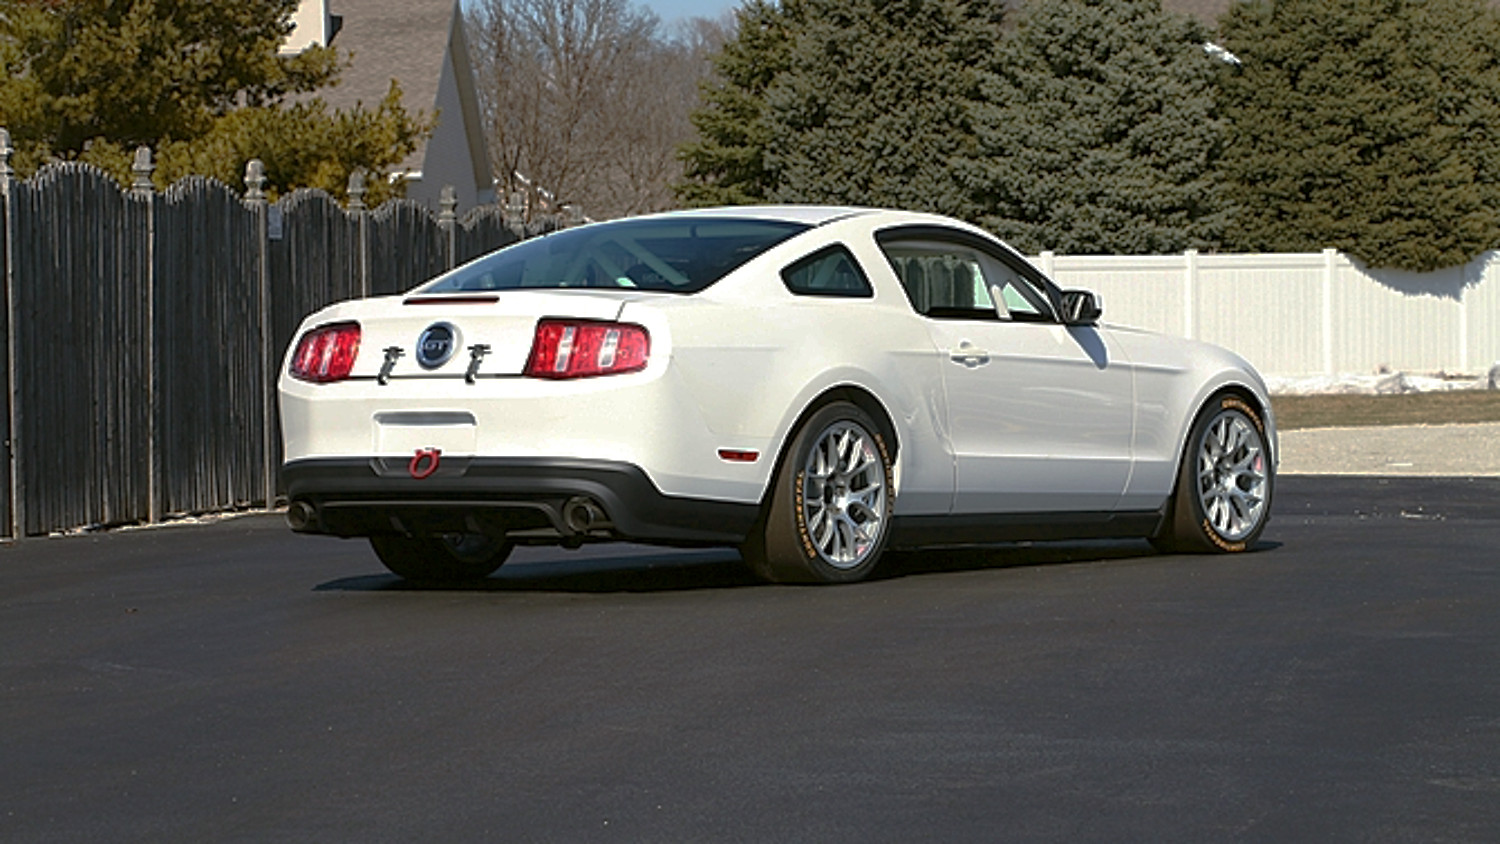 2012 Ford Mustang Boss 302R Prototype For Sale